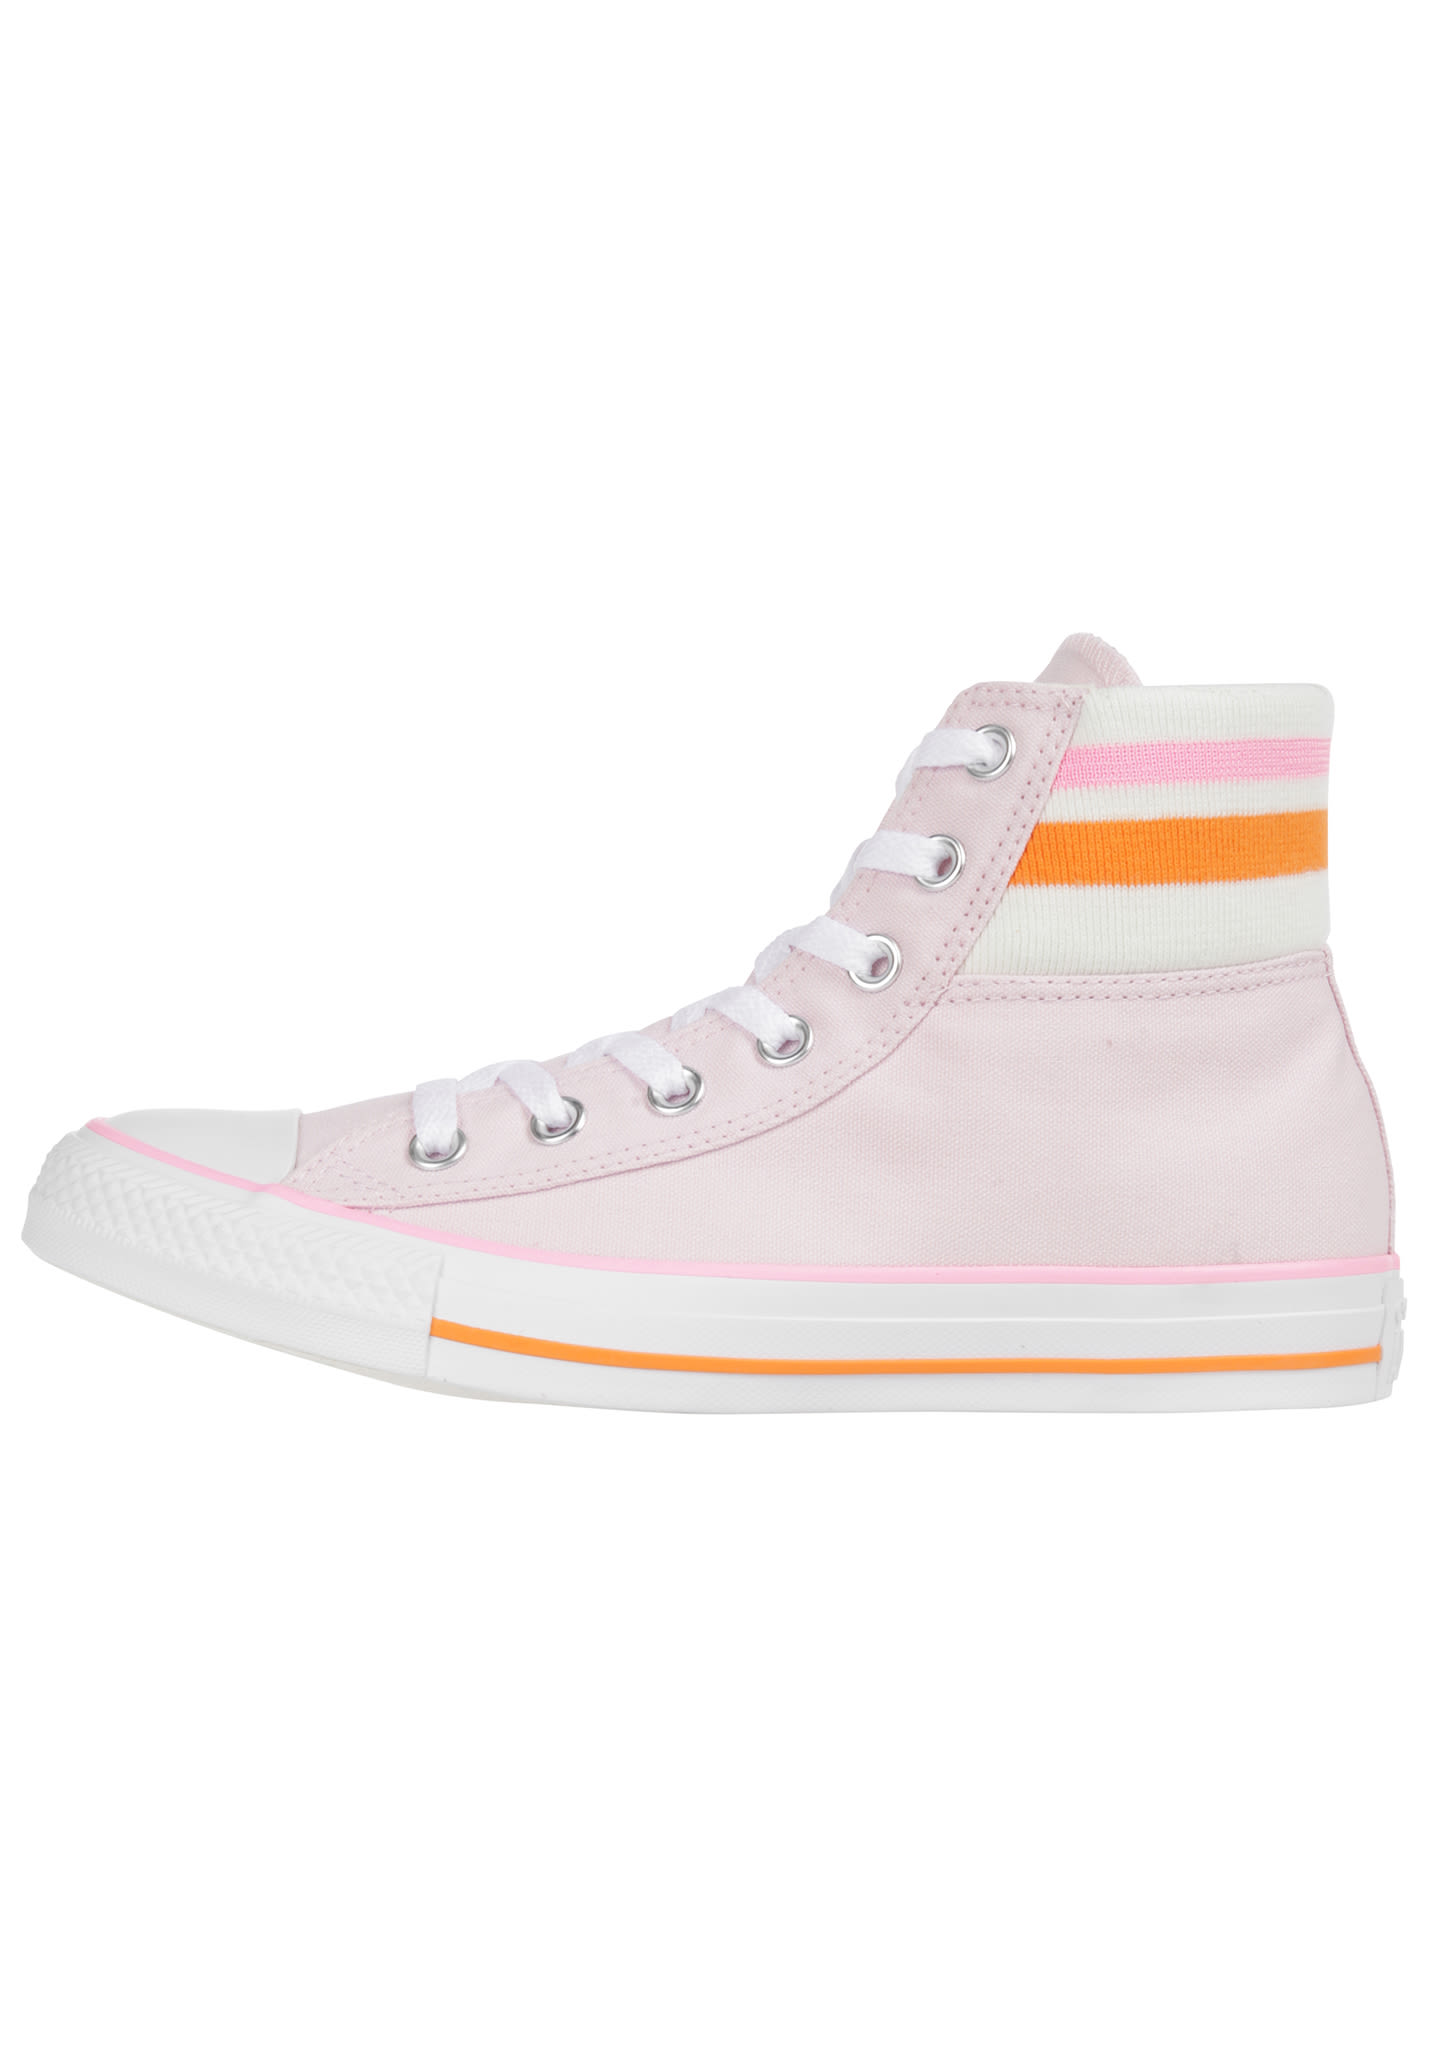 4724815afaf031 Converse chuck taylor all star hi sneakers for women pink planet sports jpg  1430x2048 Pink converse